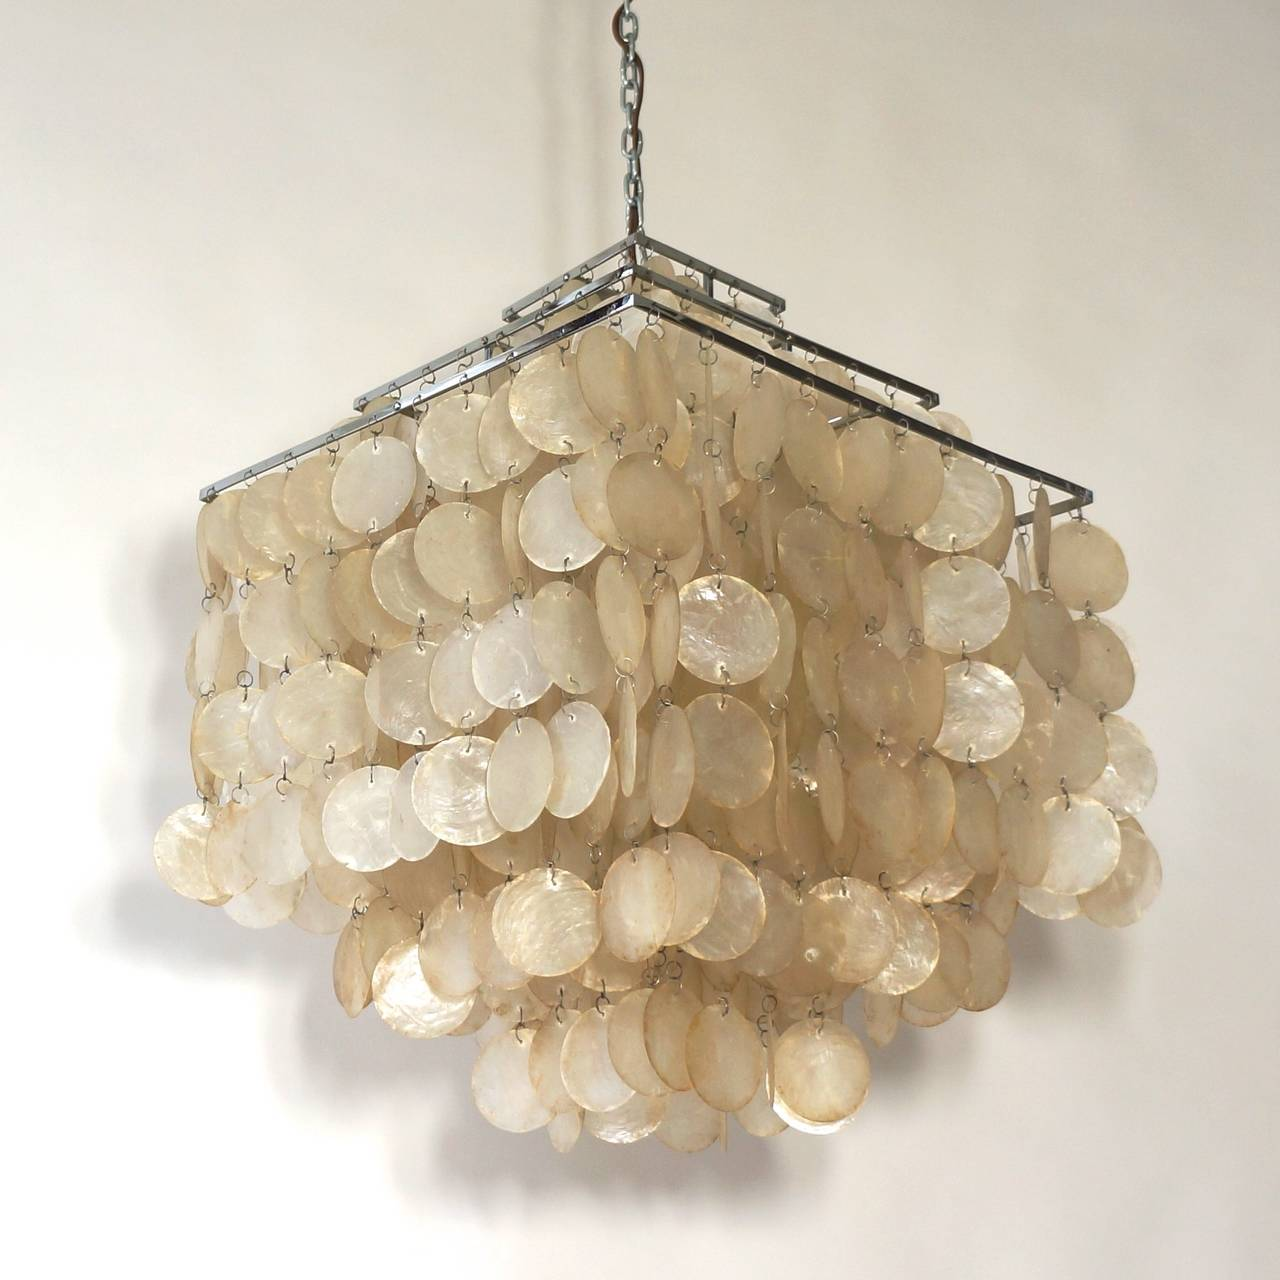 Shell chandelier arts and crafts chandelier gallery capiz shell 28 capiz chandeliers arubaitofo Images